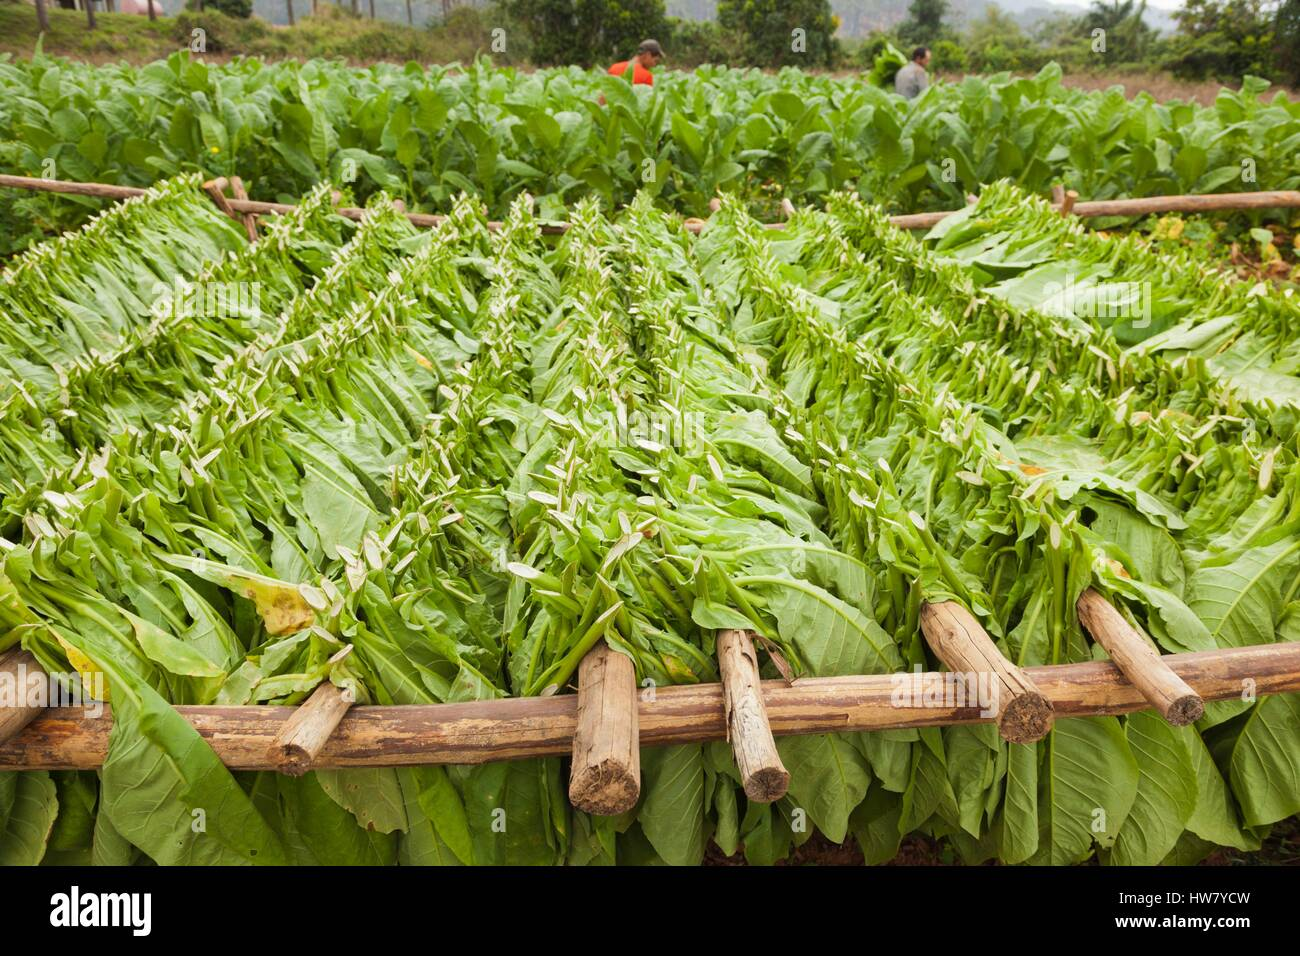 Cuba, Pinar del Rio Province, Vinales, Vinales Valley, outdoor drying of tobacco leaves - Stock Image